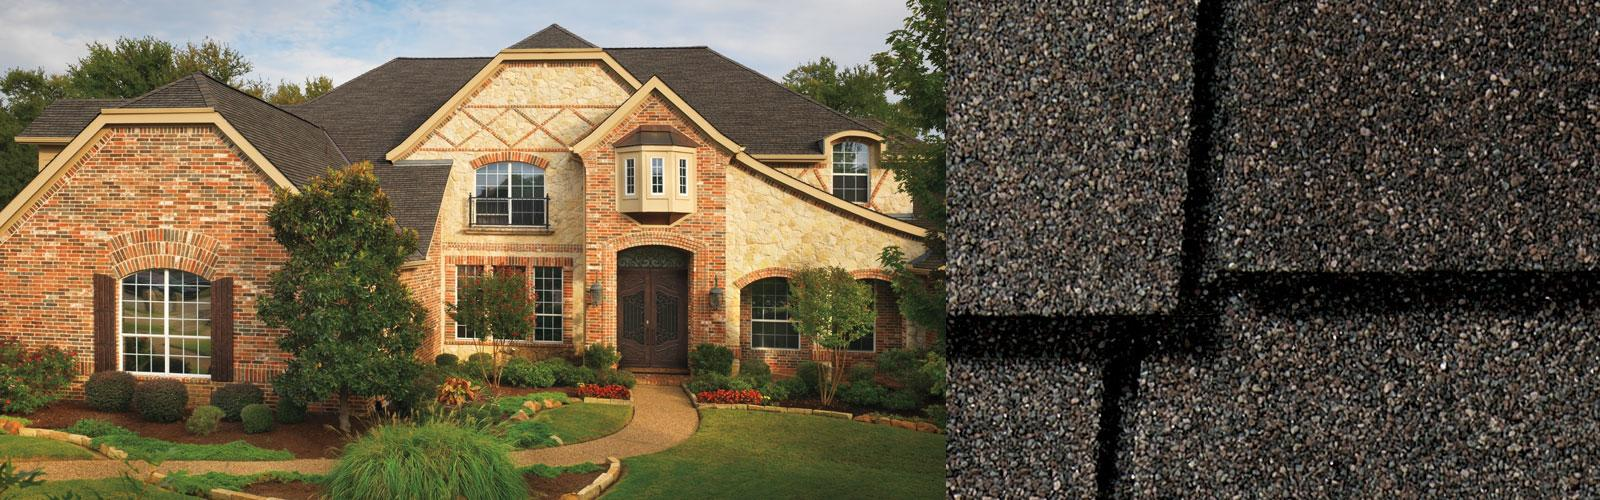 Lone Star Roofing  & Construction Inc. Images